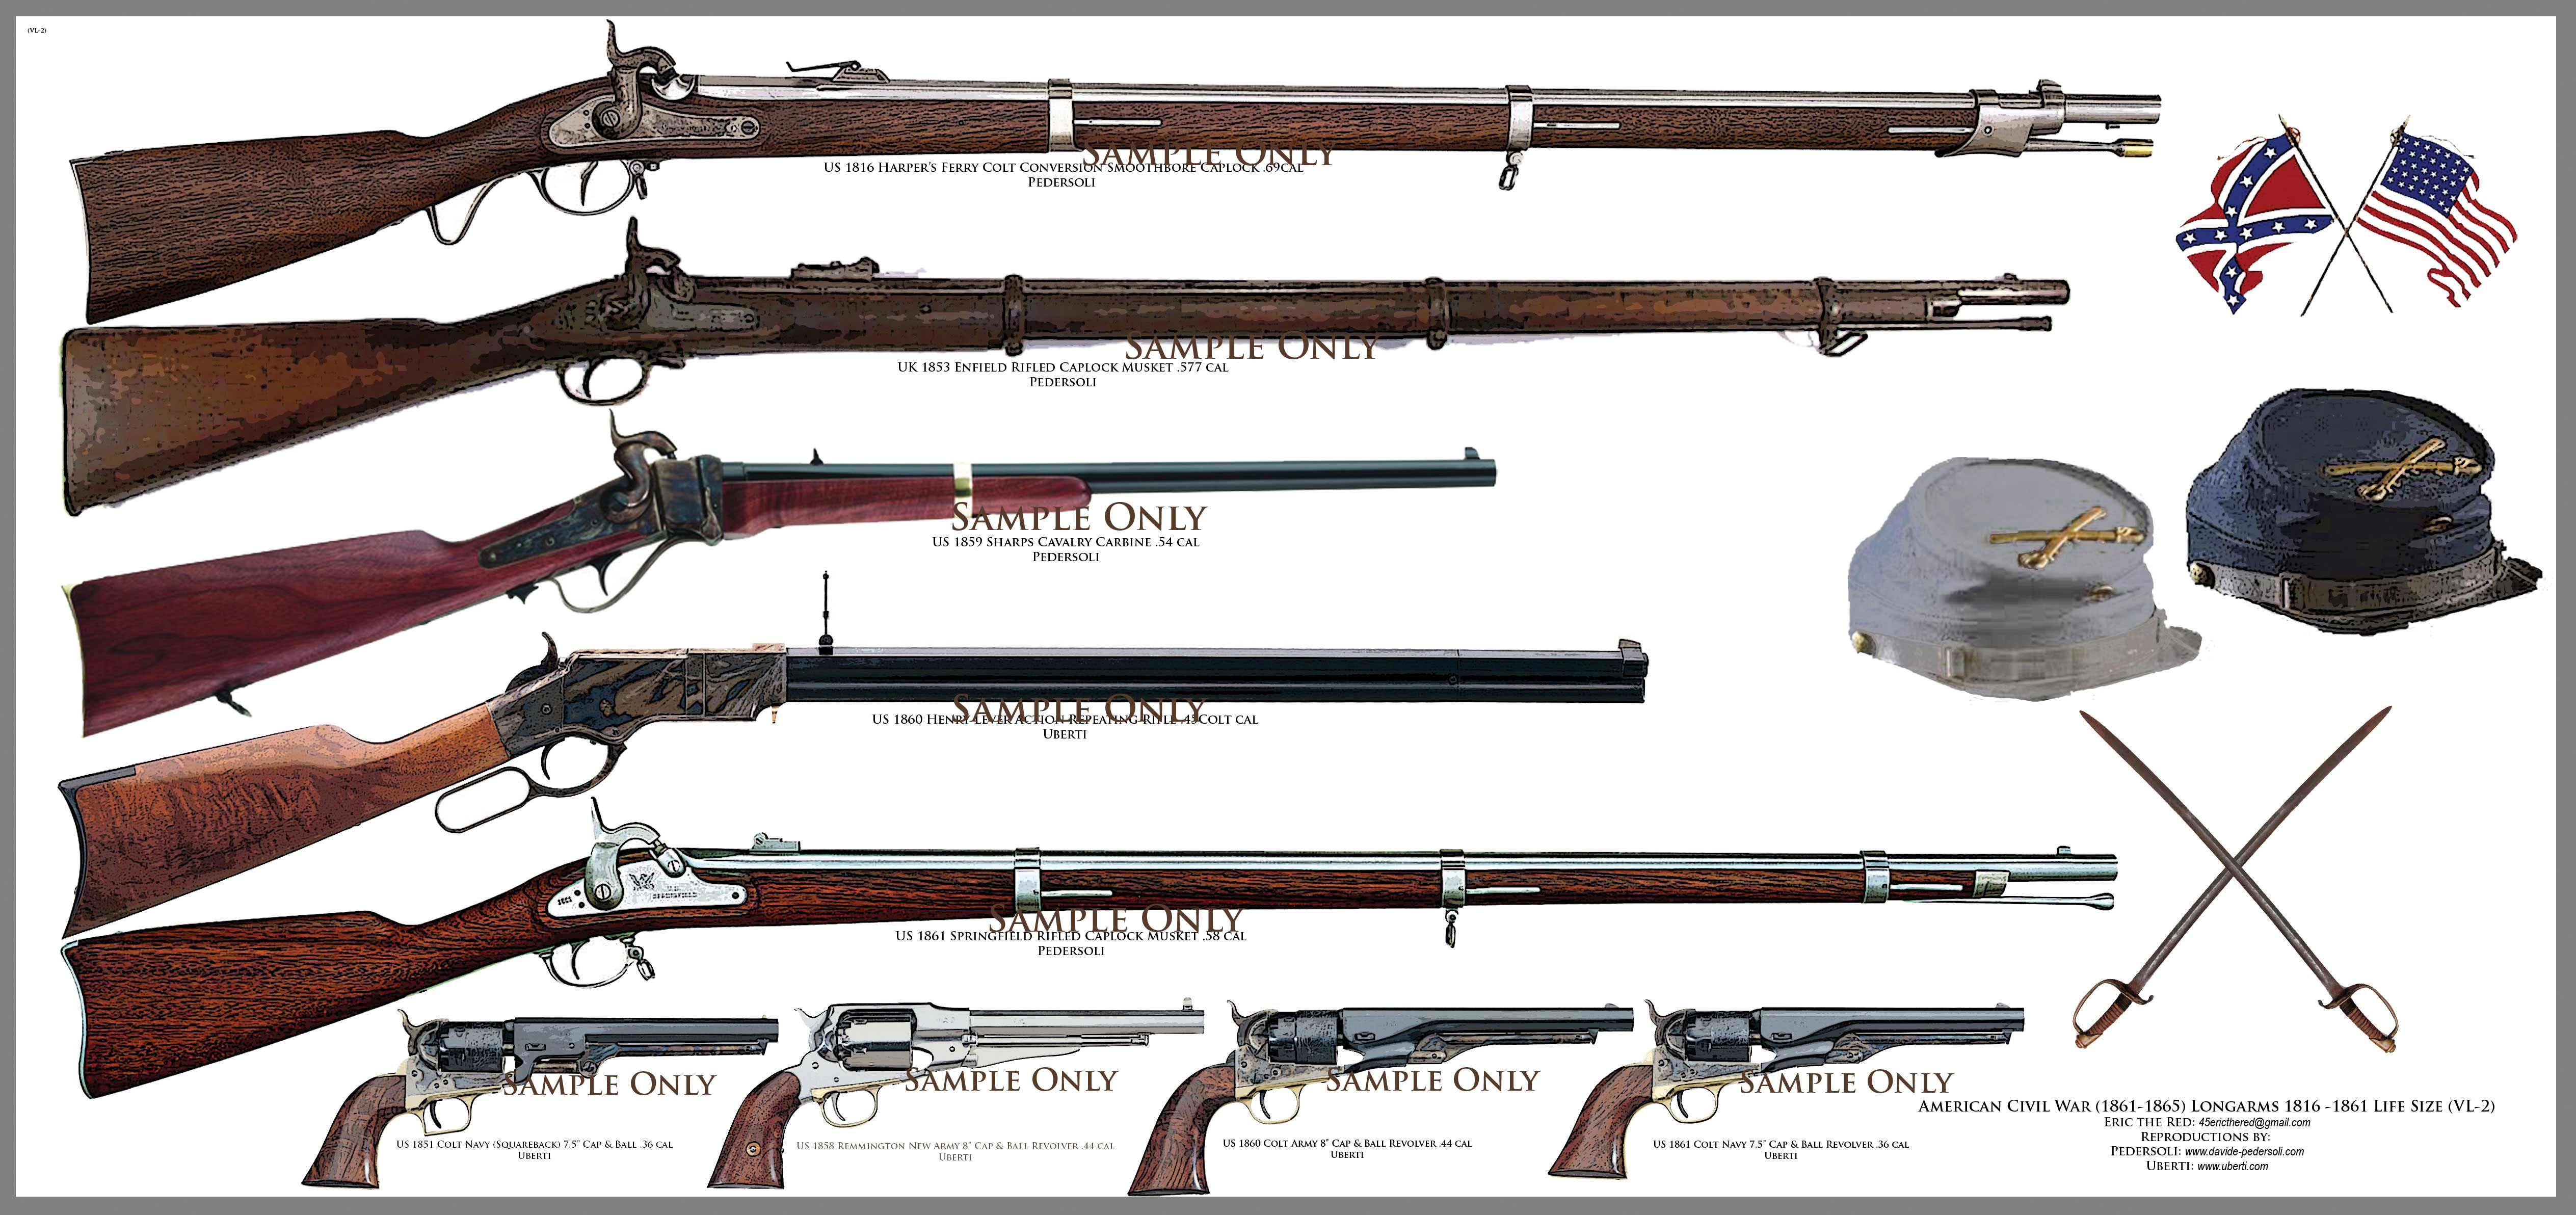 Images For > Civil War Rifles And - 842.1KB